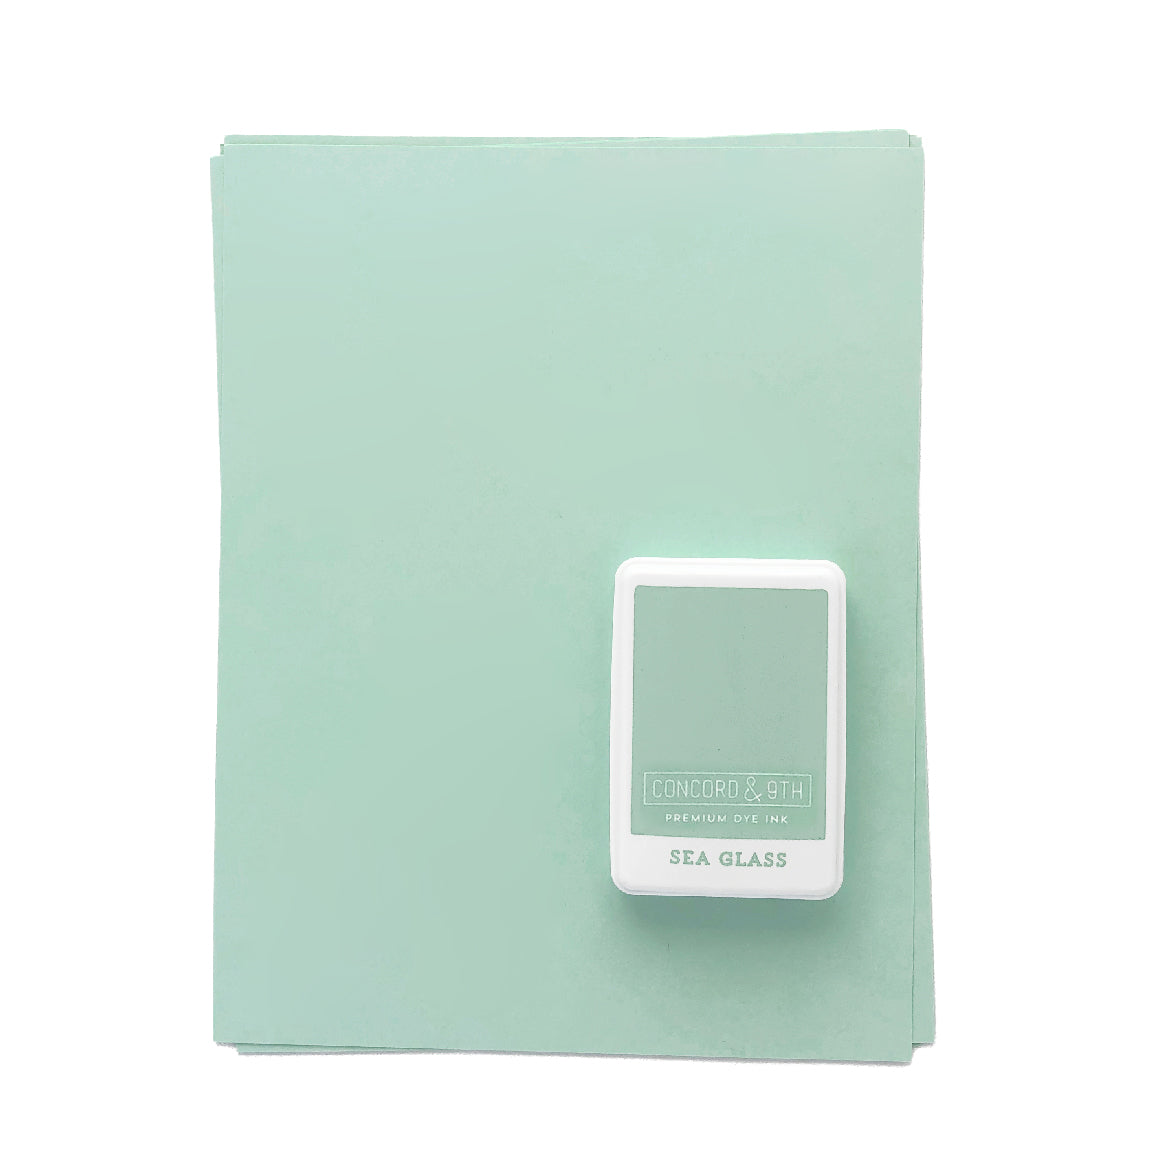 Sea Glass Ink Pad & Cardstock Bundle